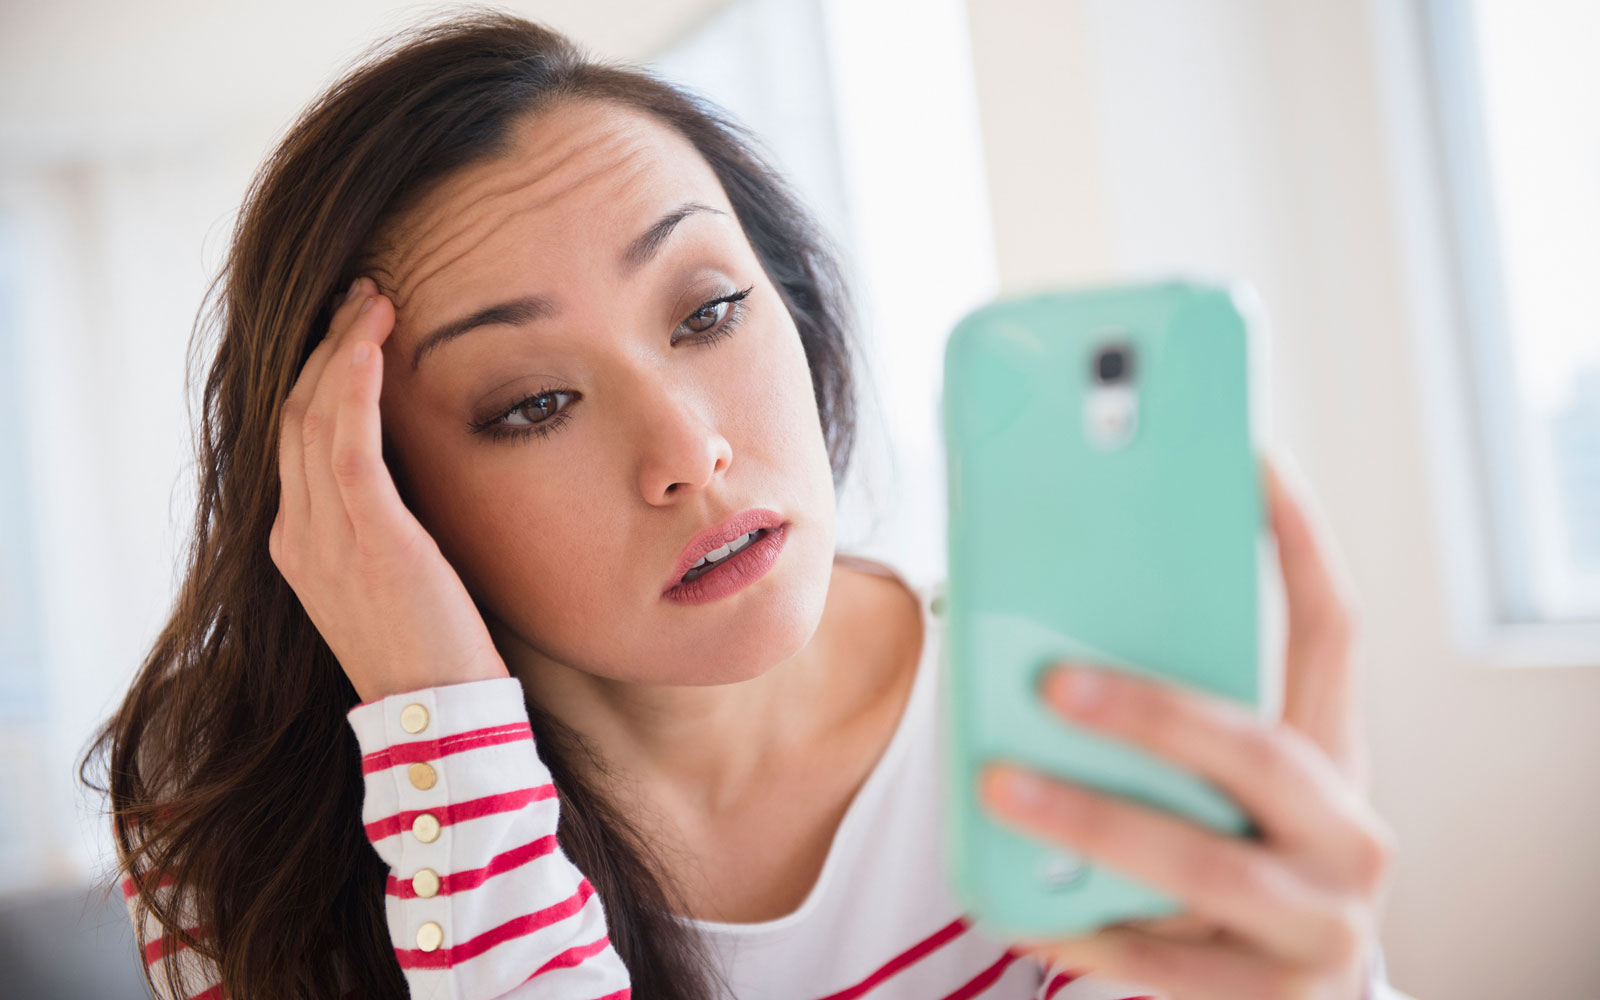 Stressed woman using cell phone